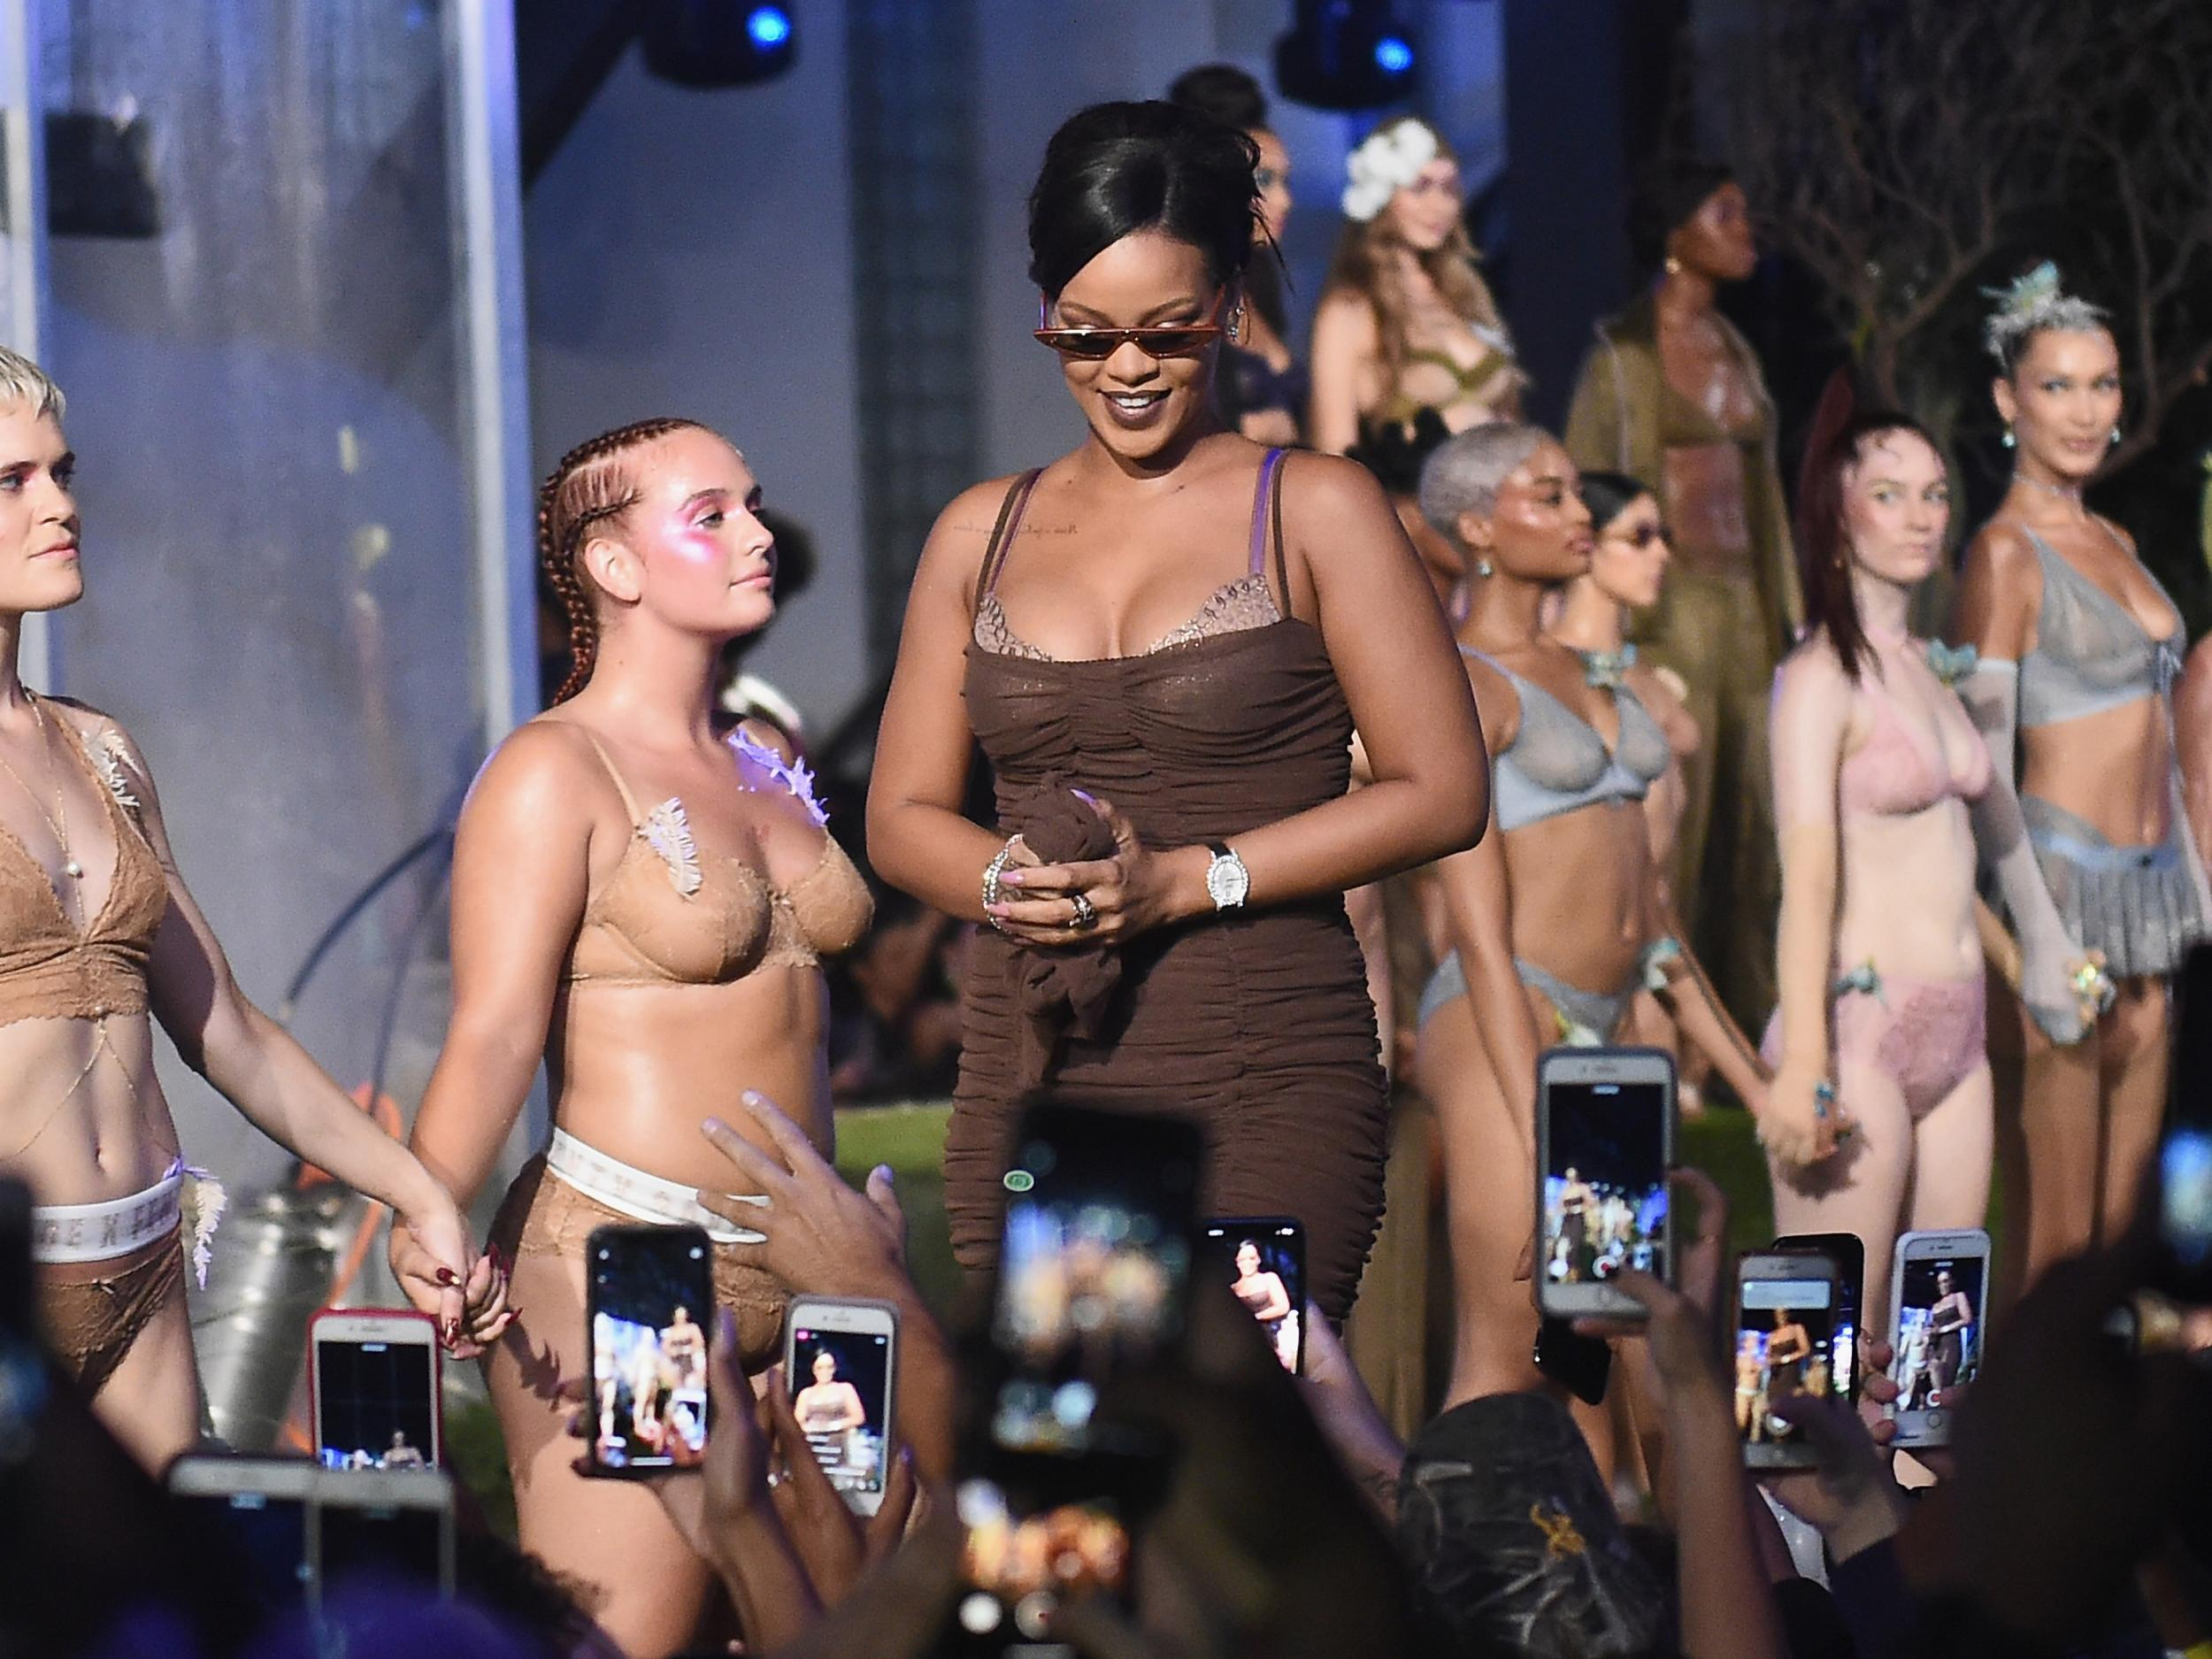 New York Fashion Week: From politics to Rihanna's Savage x Fenty, here's what to expect